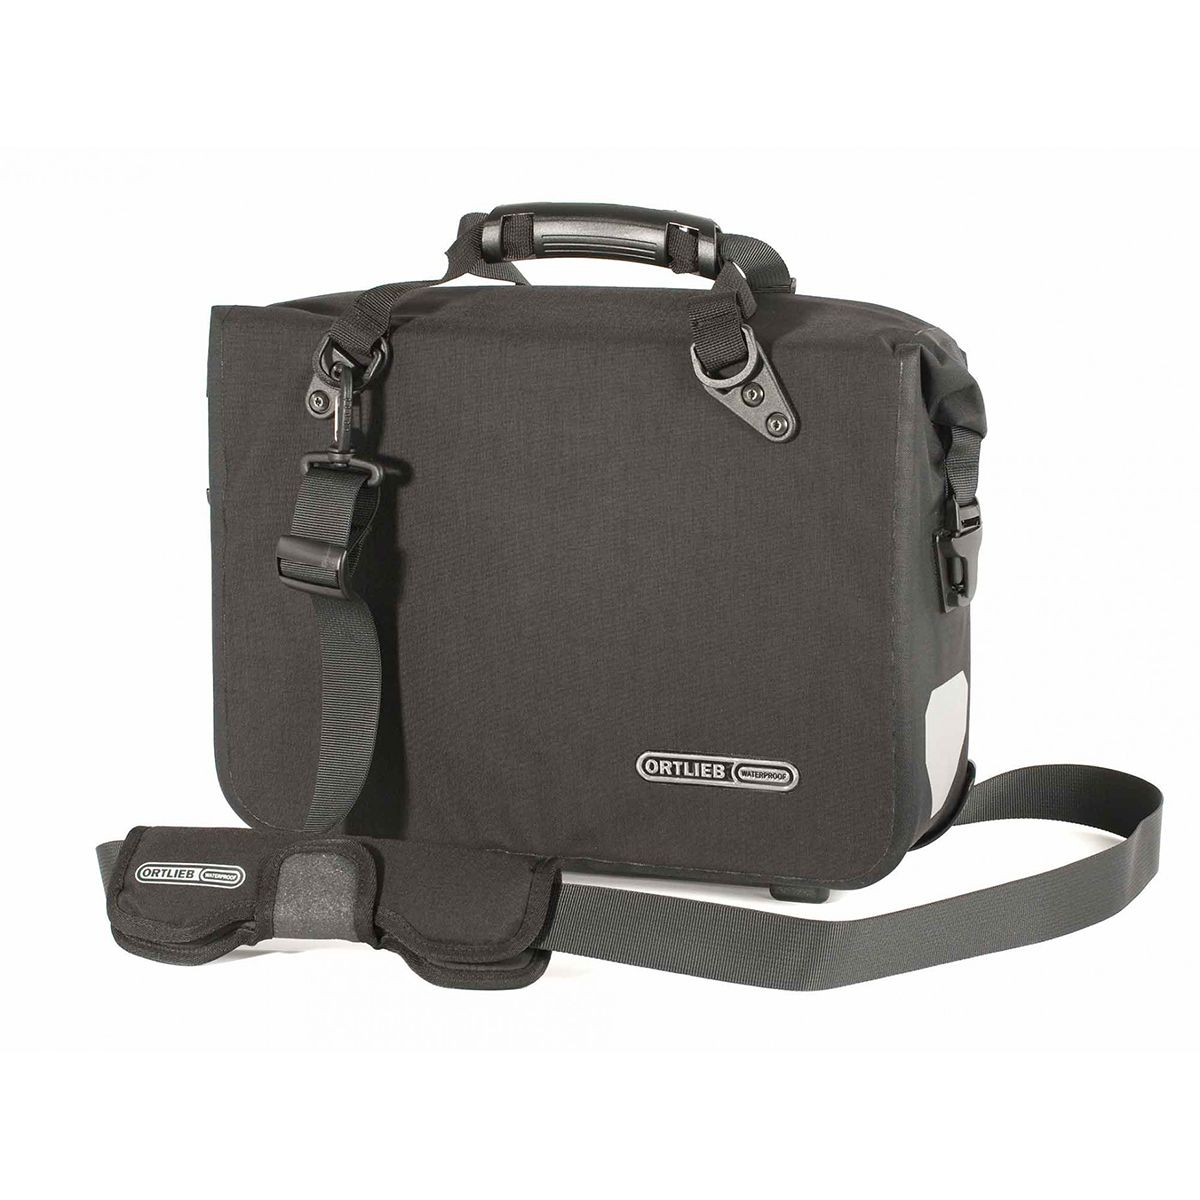 ORTLIEB OFFICE BAG QL2.1 M pannier bag | Travel bags